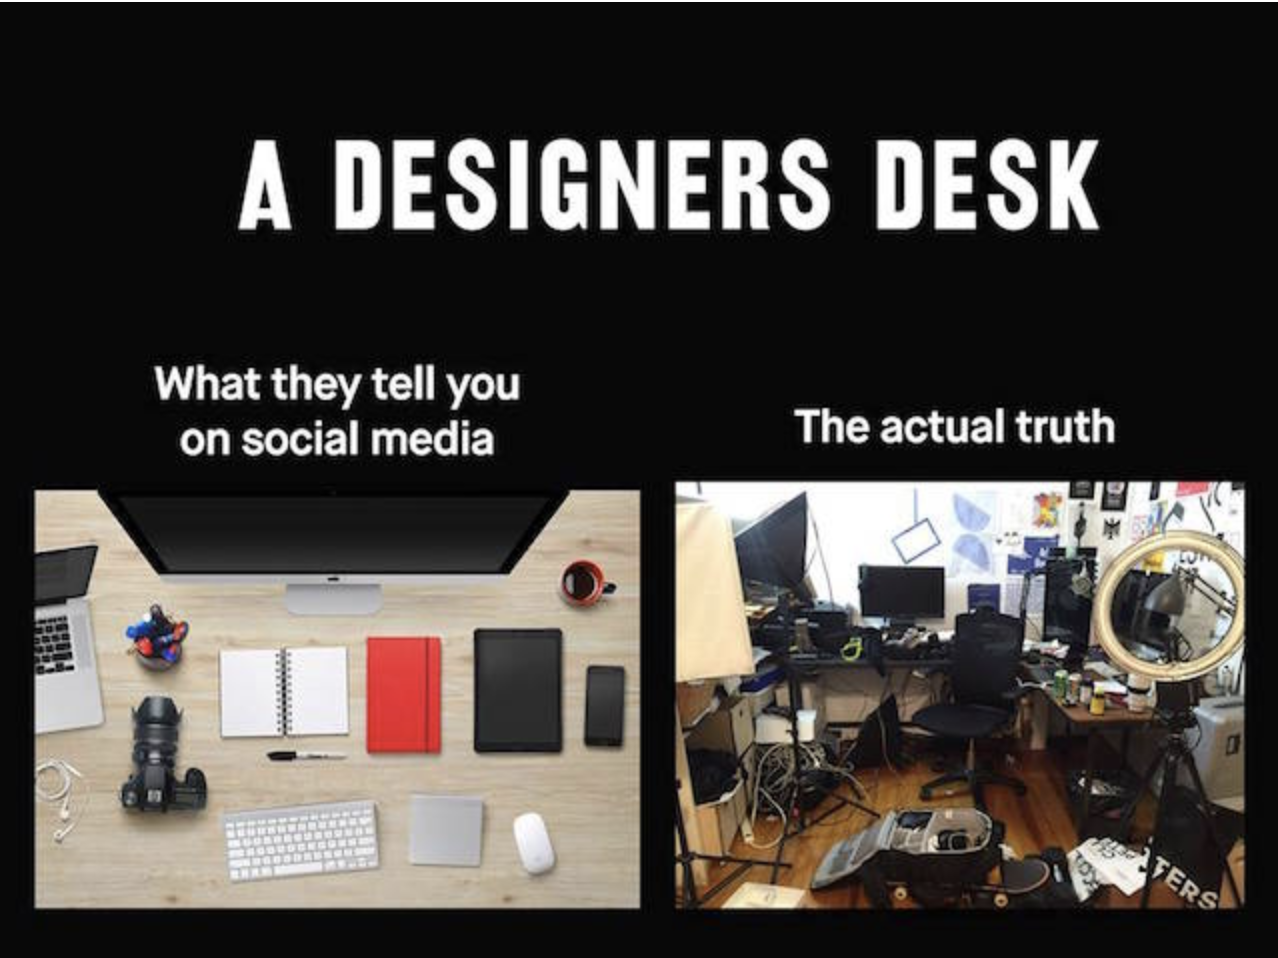 A designer's desk: What they tell you on social media vs the actual truth